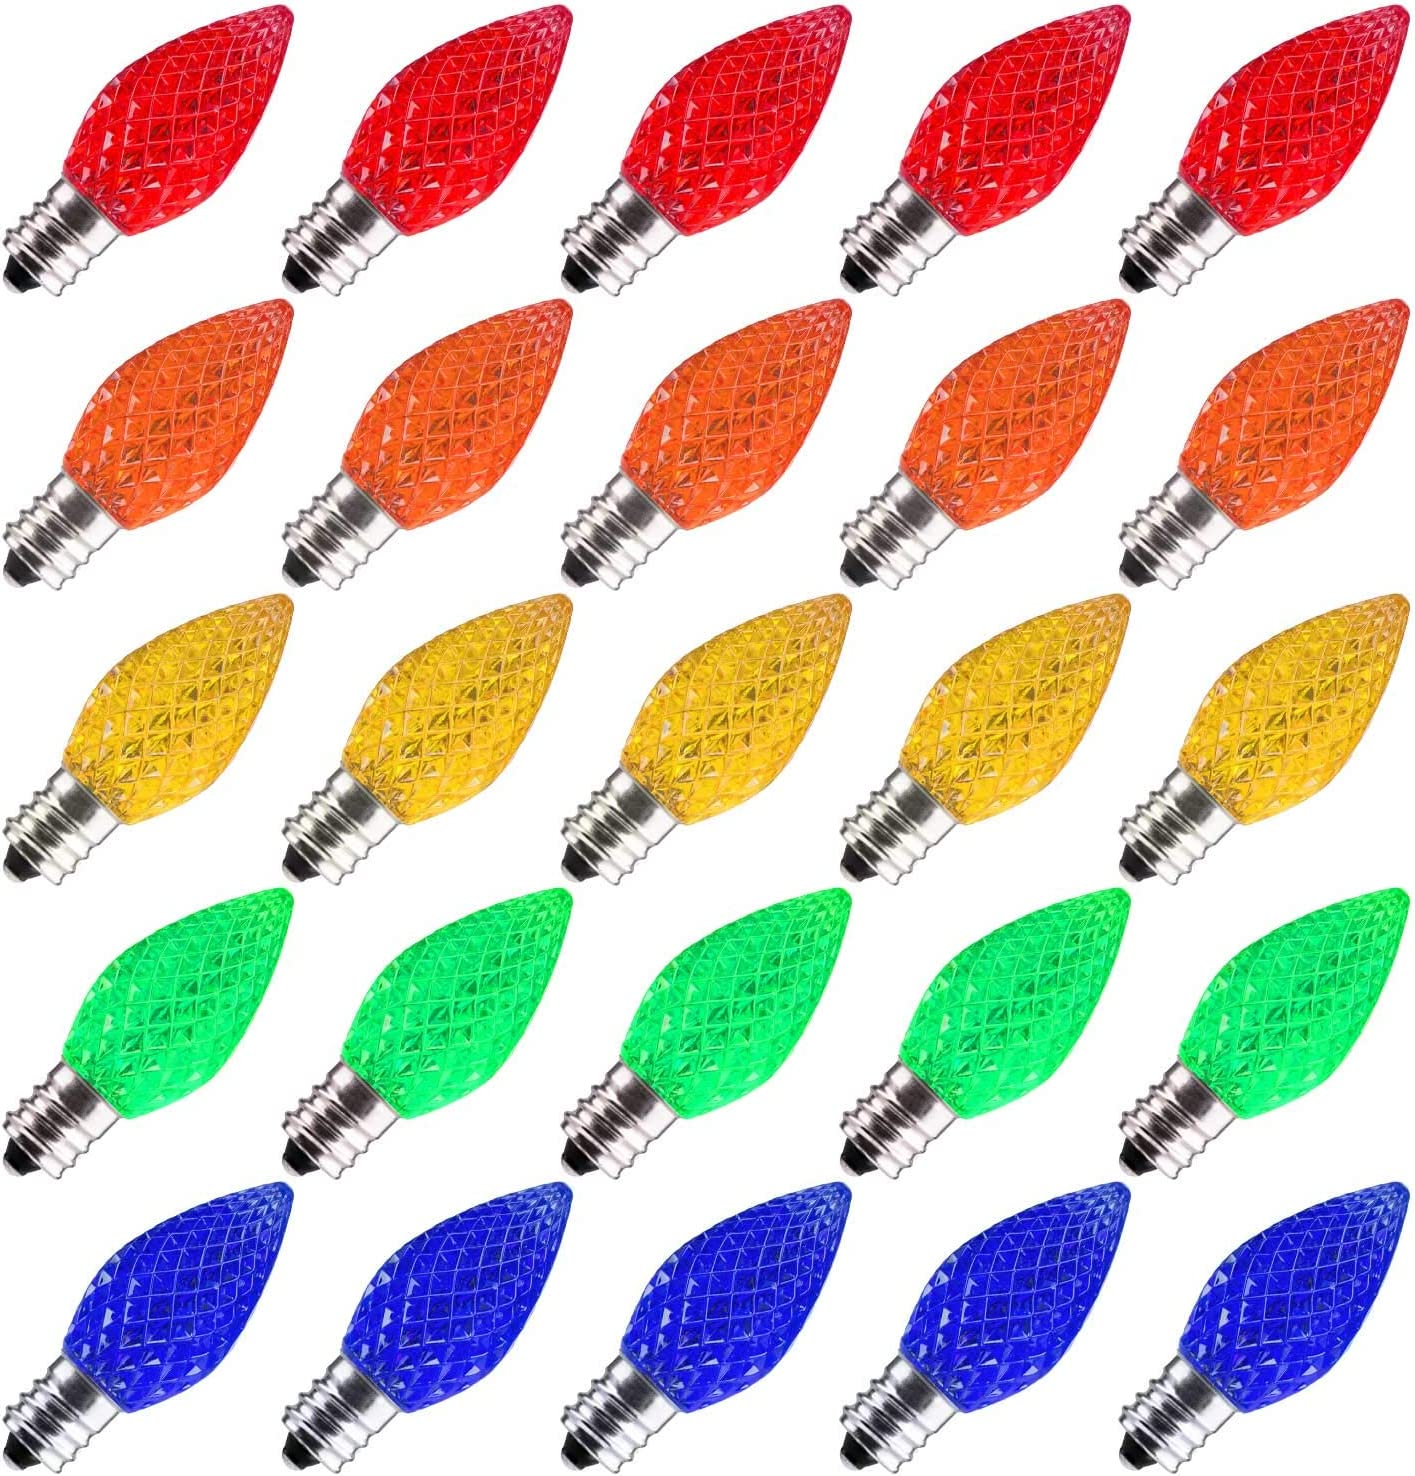 25% OFF 50 Pack C7 Led Replacement Light Shatterproof Bulb Popular brand in the world Christmas